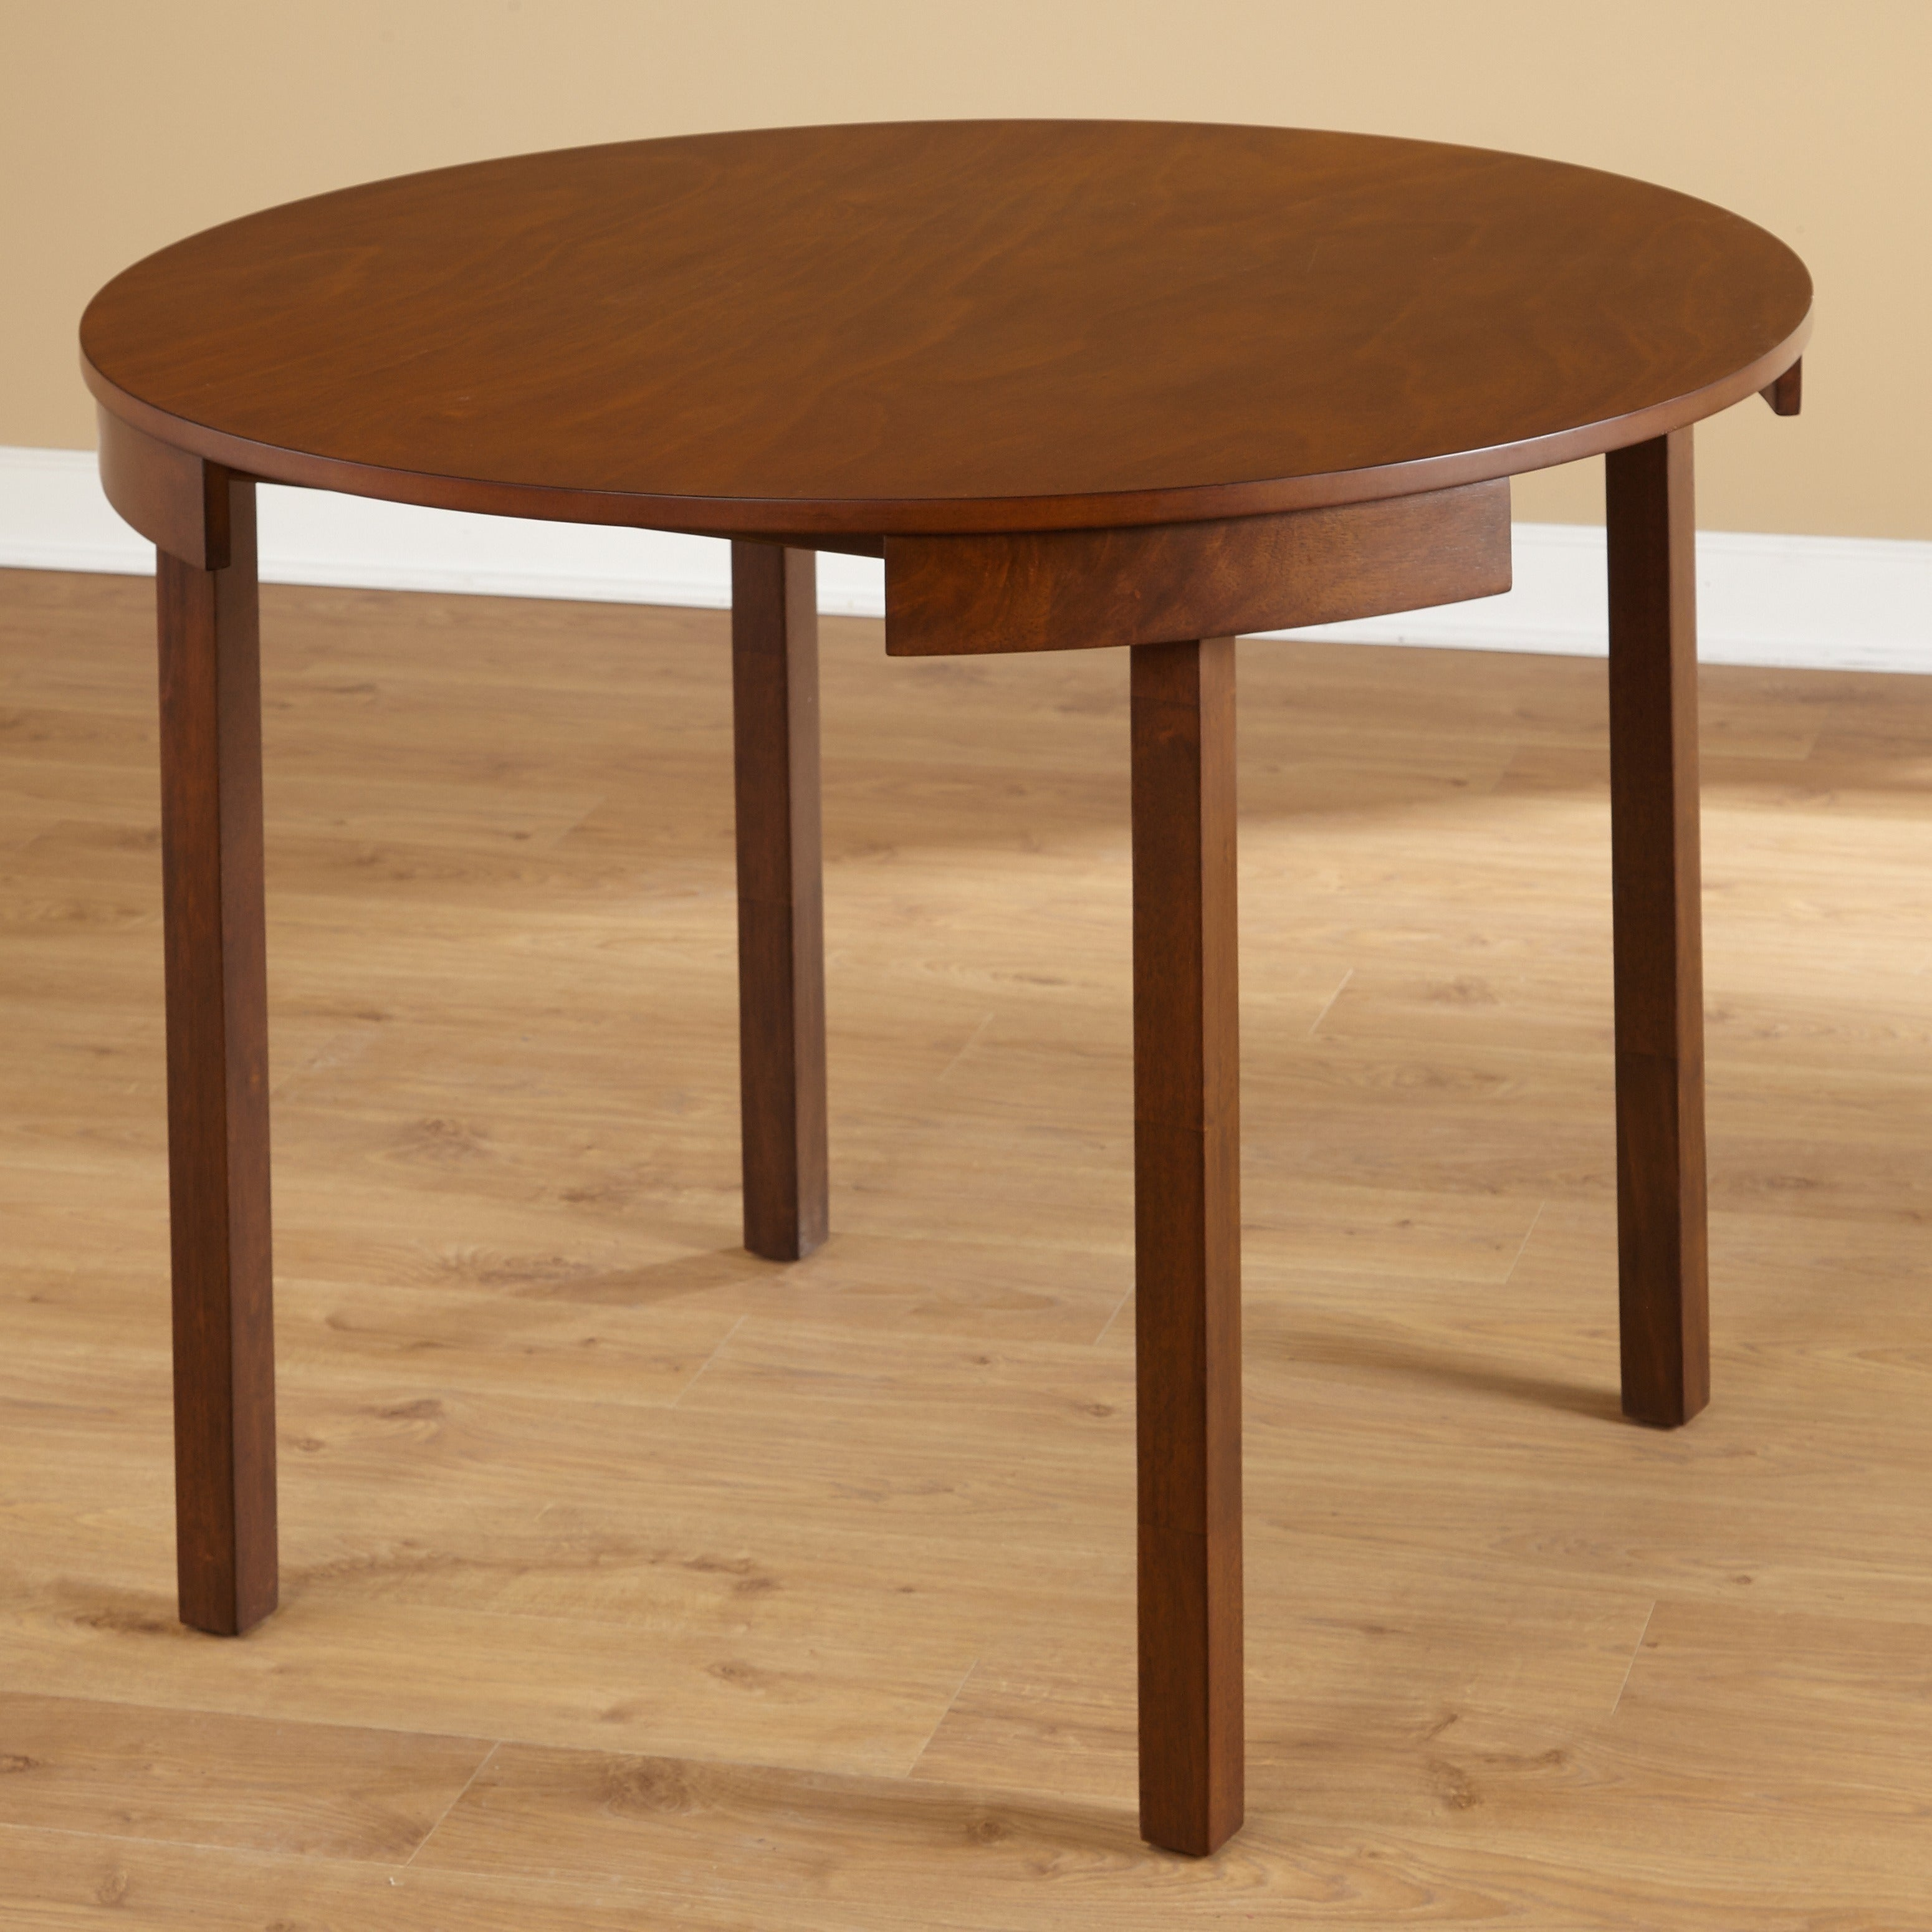 Small Apartment Kitchen Table: Compact Round Dining Set Table Wood Small Apartment